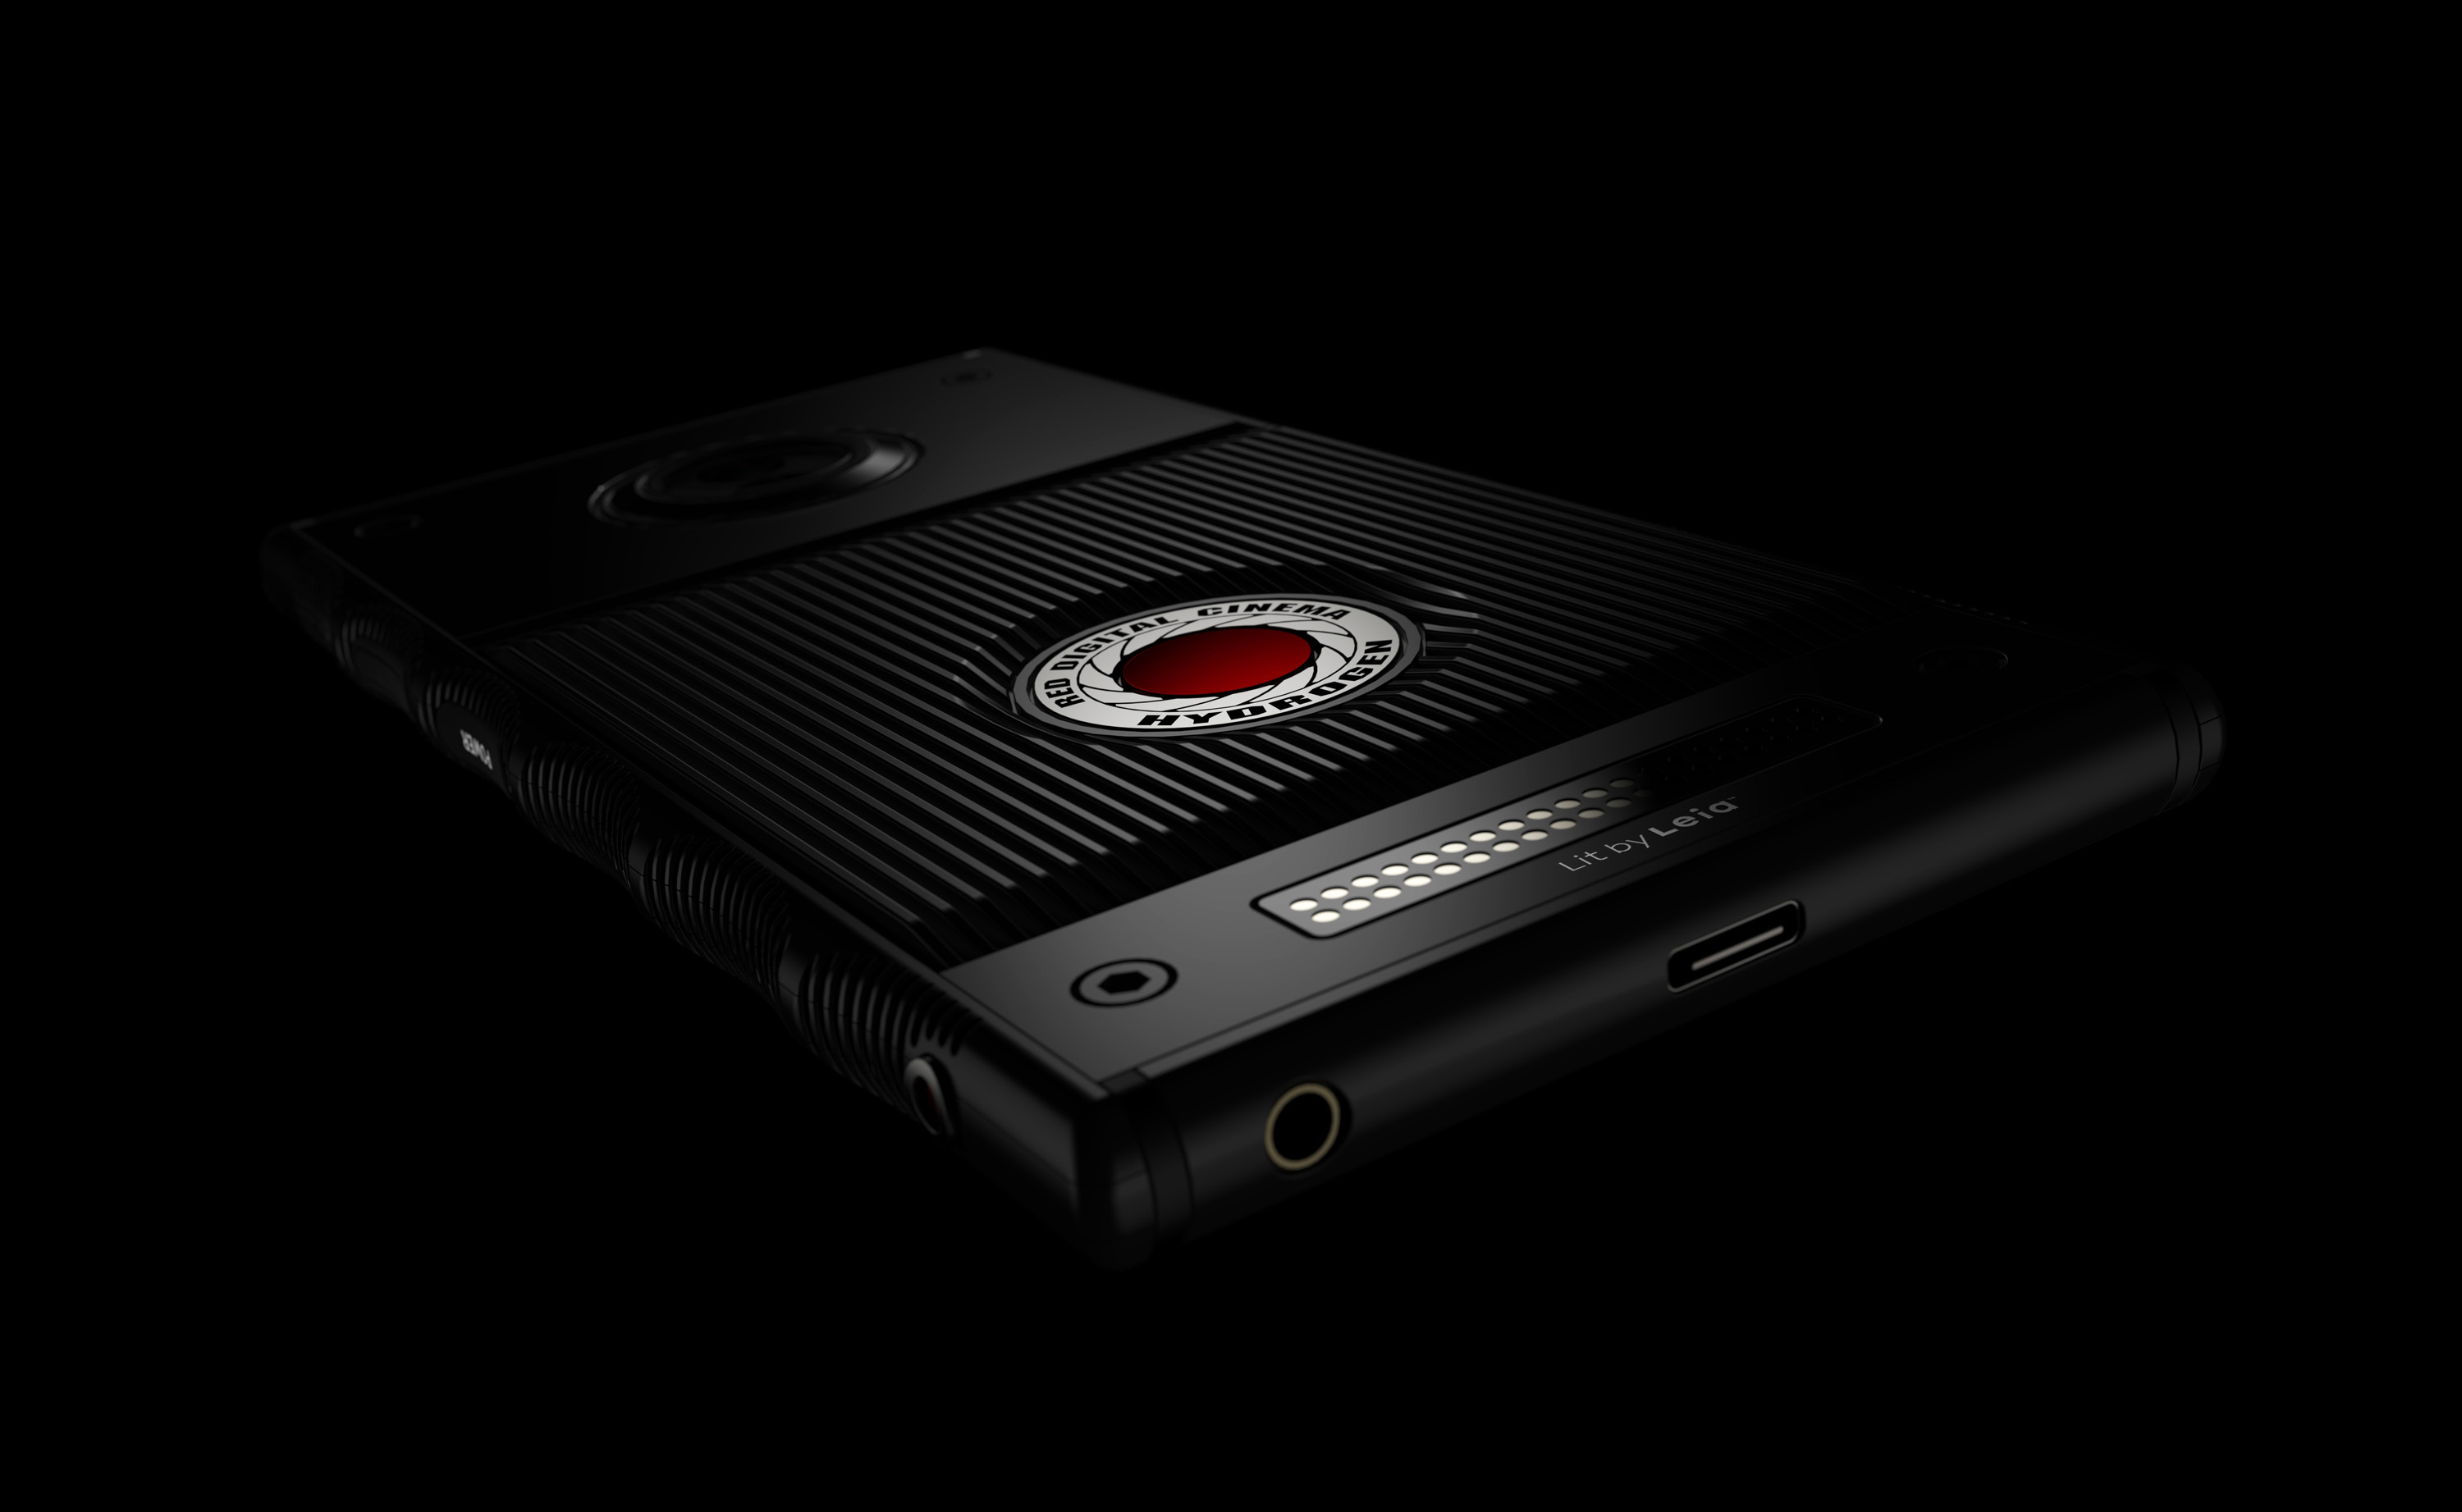 RED partners with Leia to create the Hydrogen One's holographic display